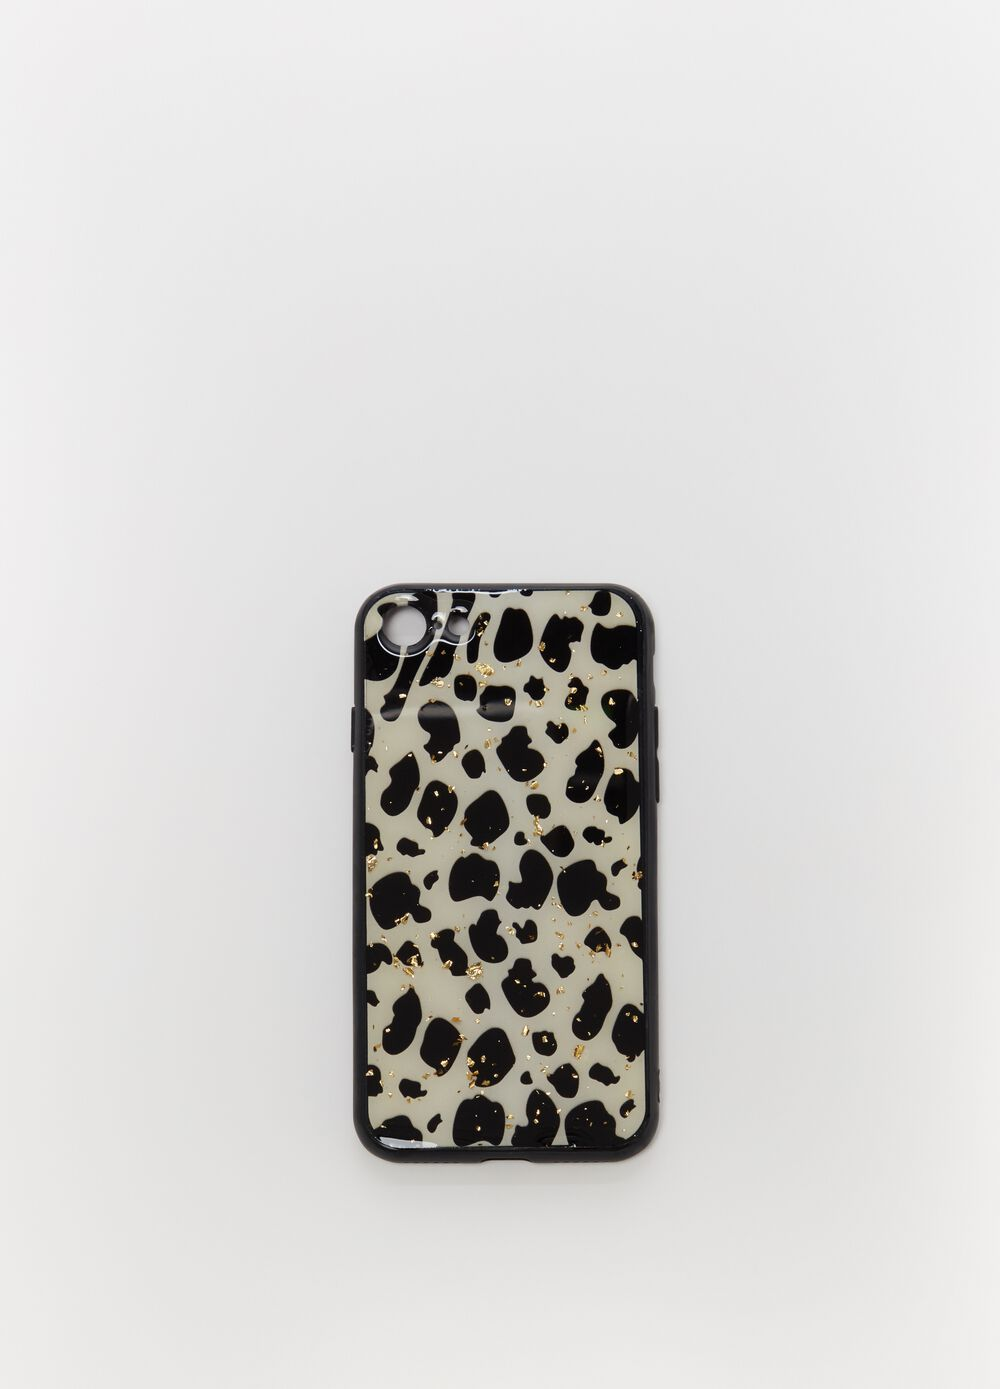 Cover for iPhone with animal print